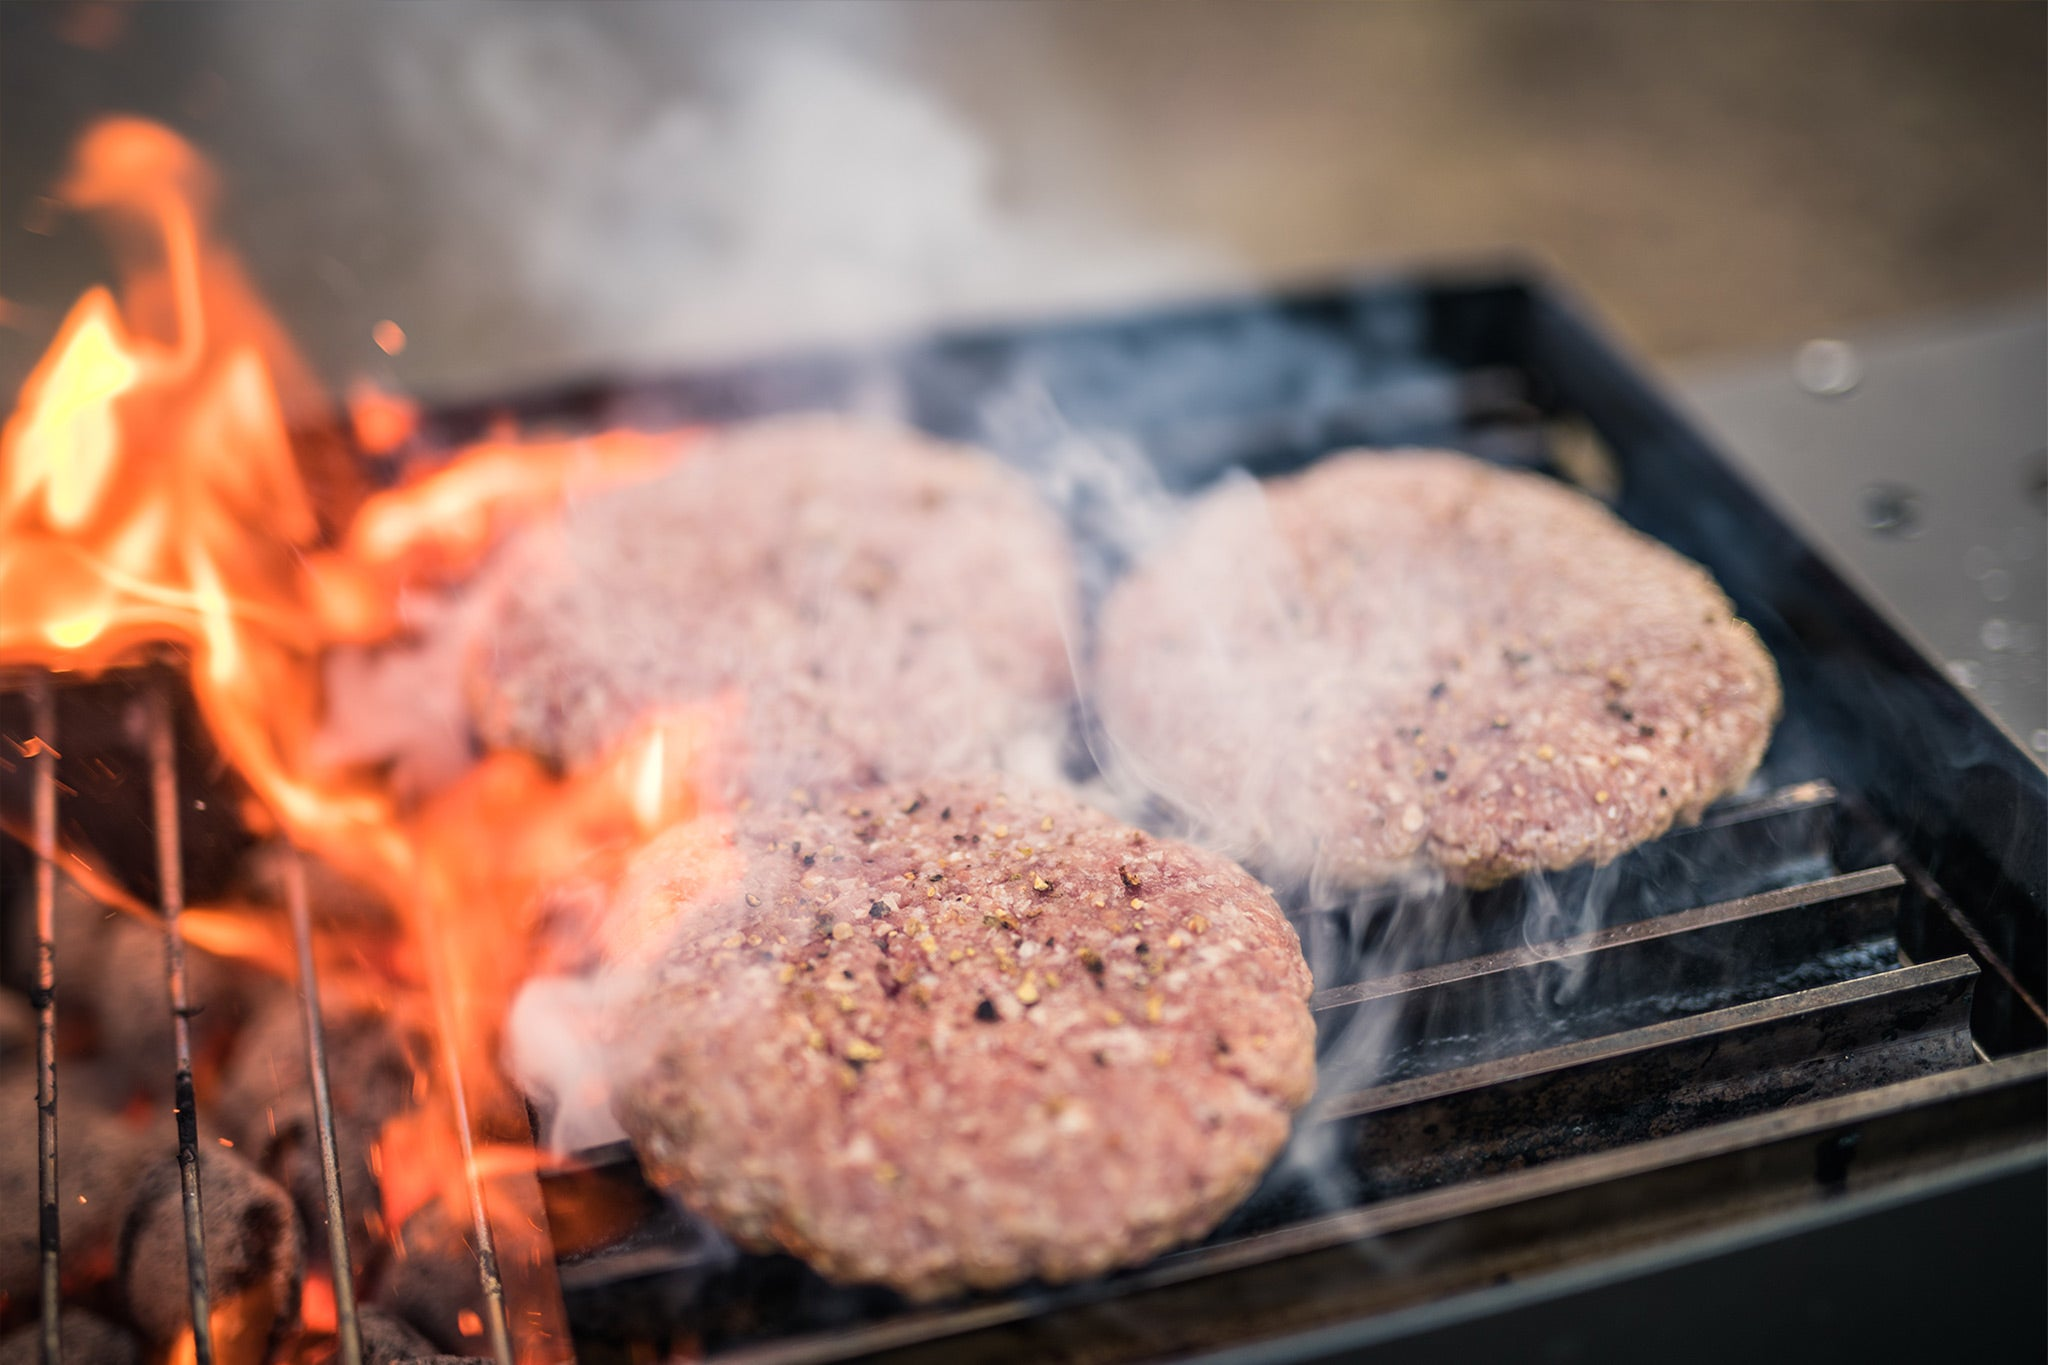 Grilling burgers on grillgrate